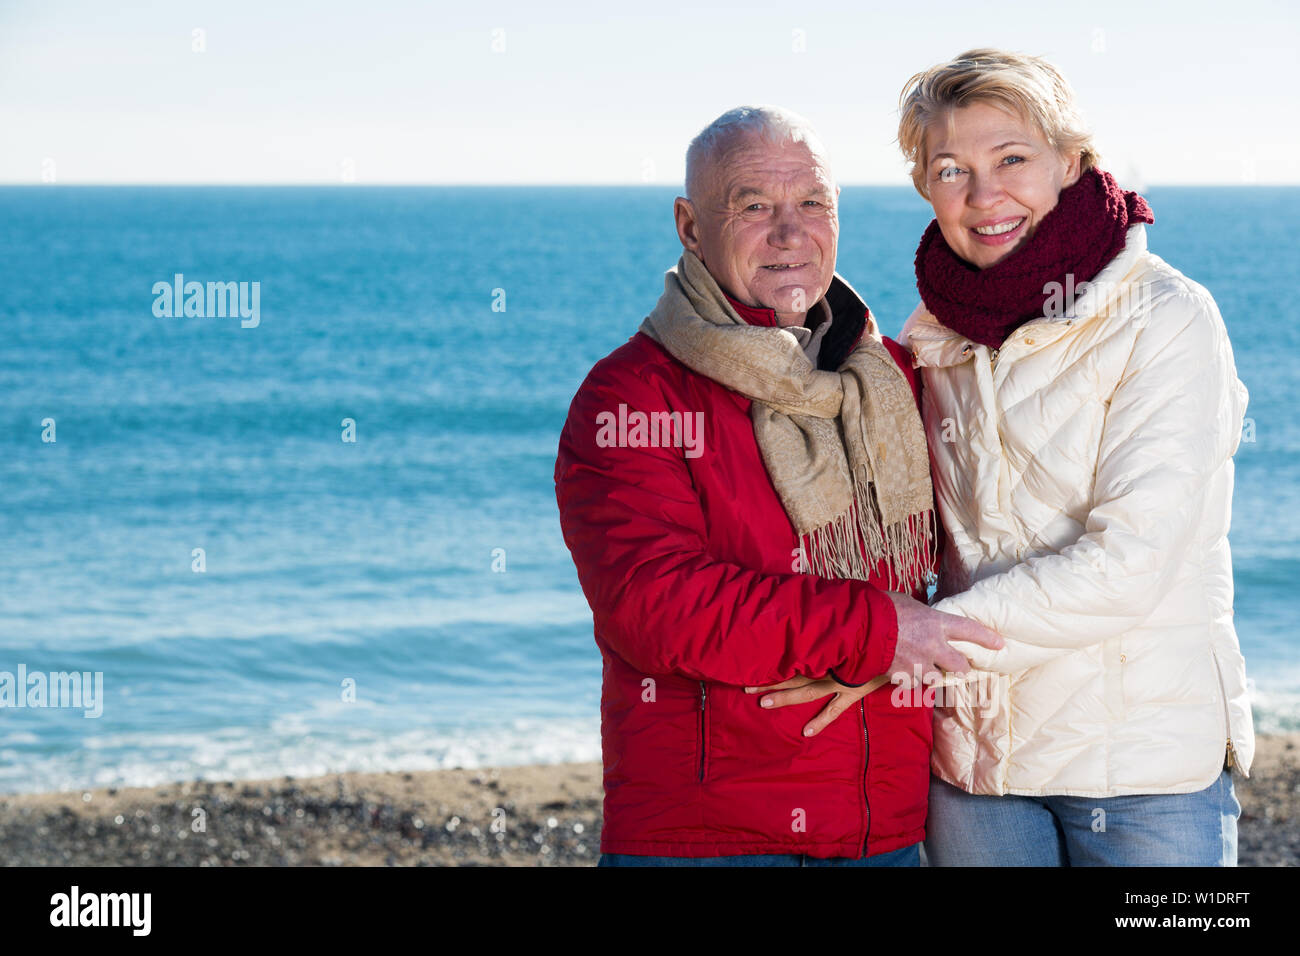 Mature man and woman walking by sea on sunny day - Stock Image